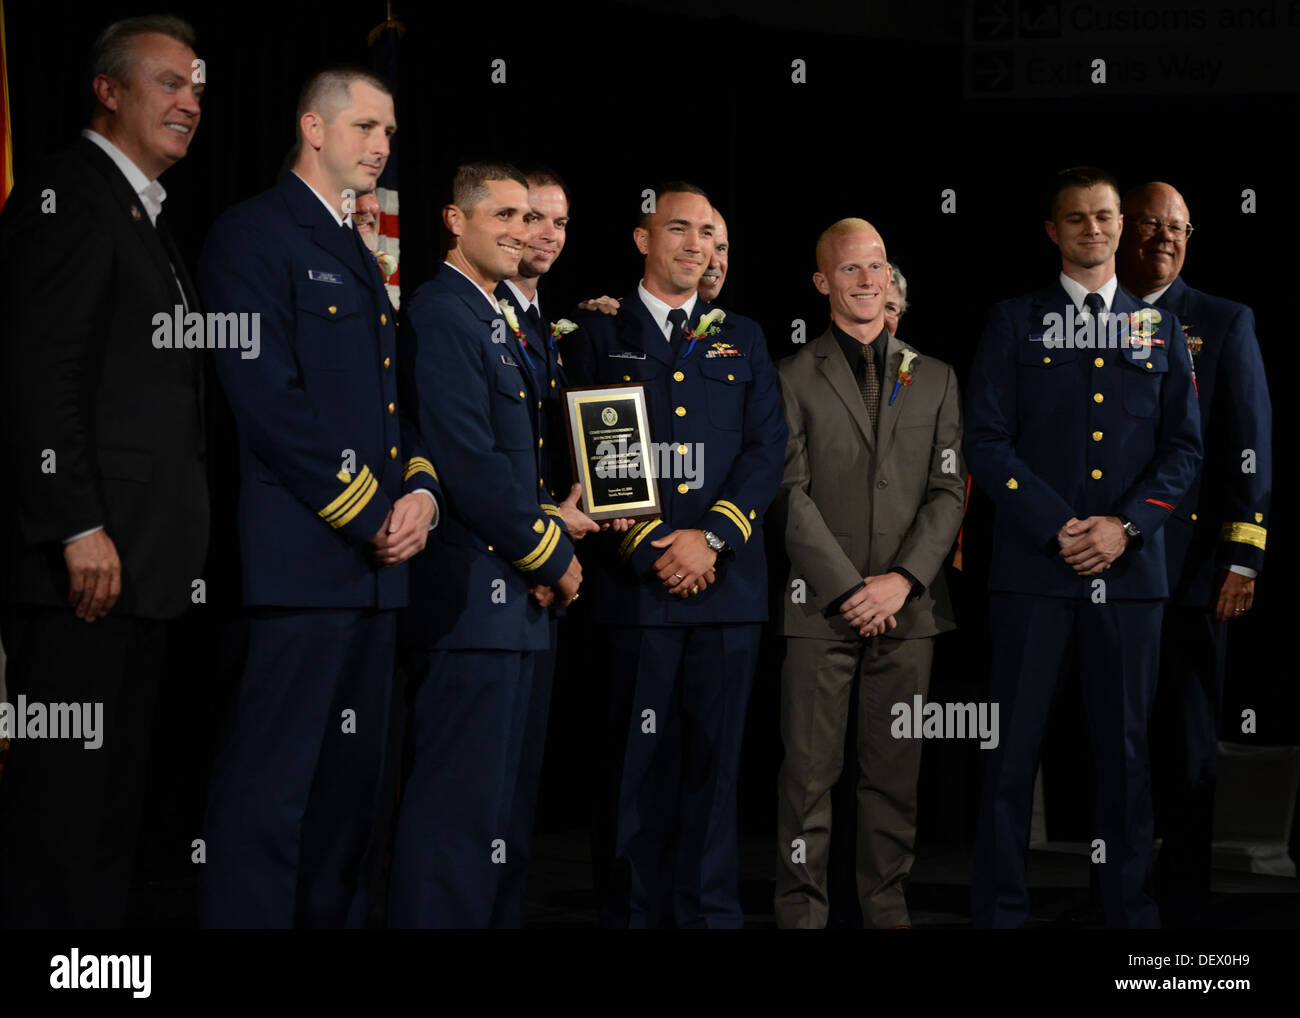 (From left to right) Lt. Cmdr. Nathan Coulter, Lt. Benjamin Berman, Petty Officer 2nd Class James Rizer, Lt. Leo Lake, Petty Off - Stock Image